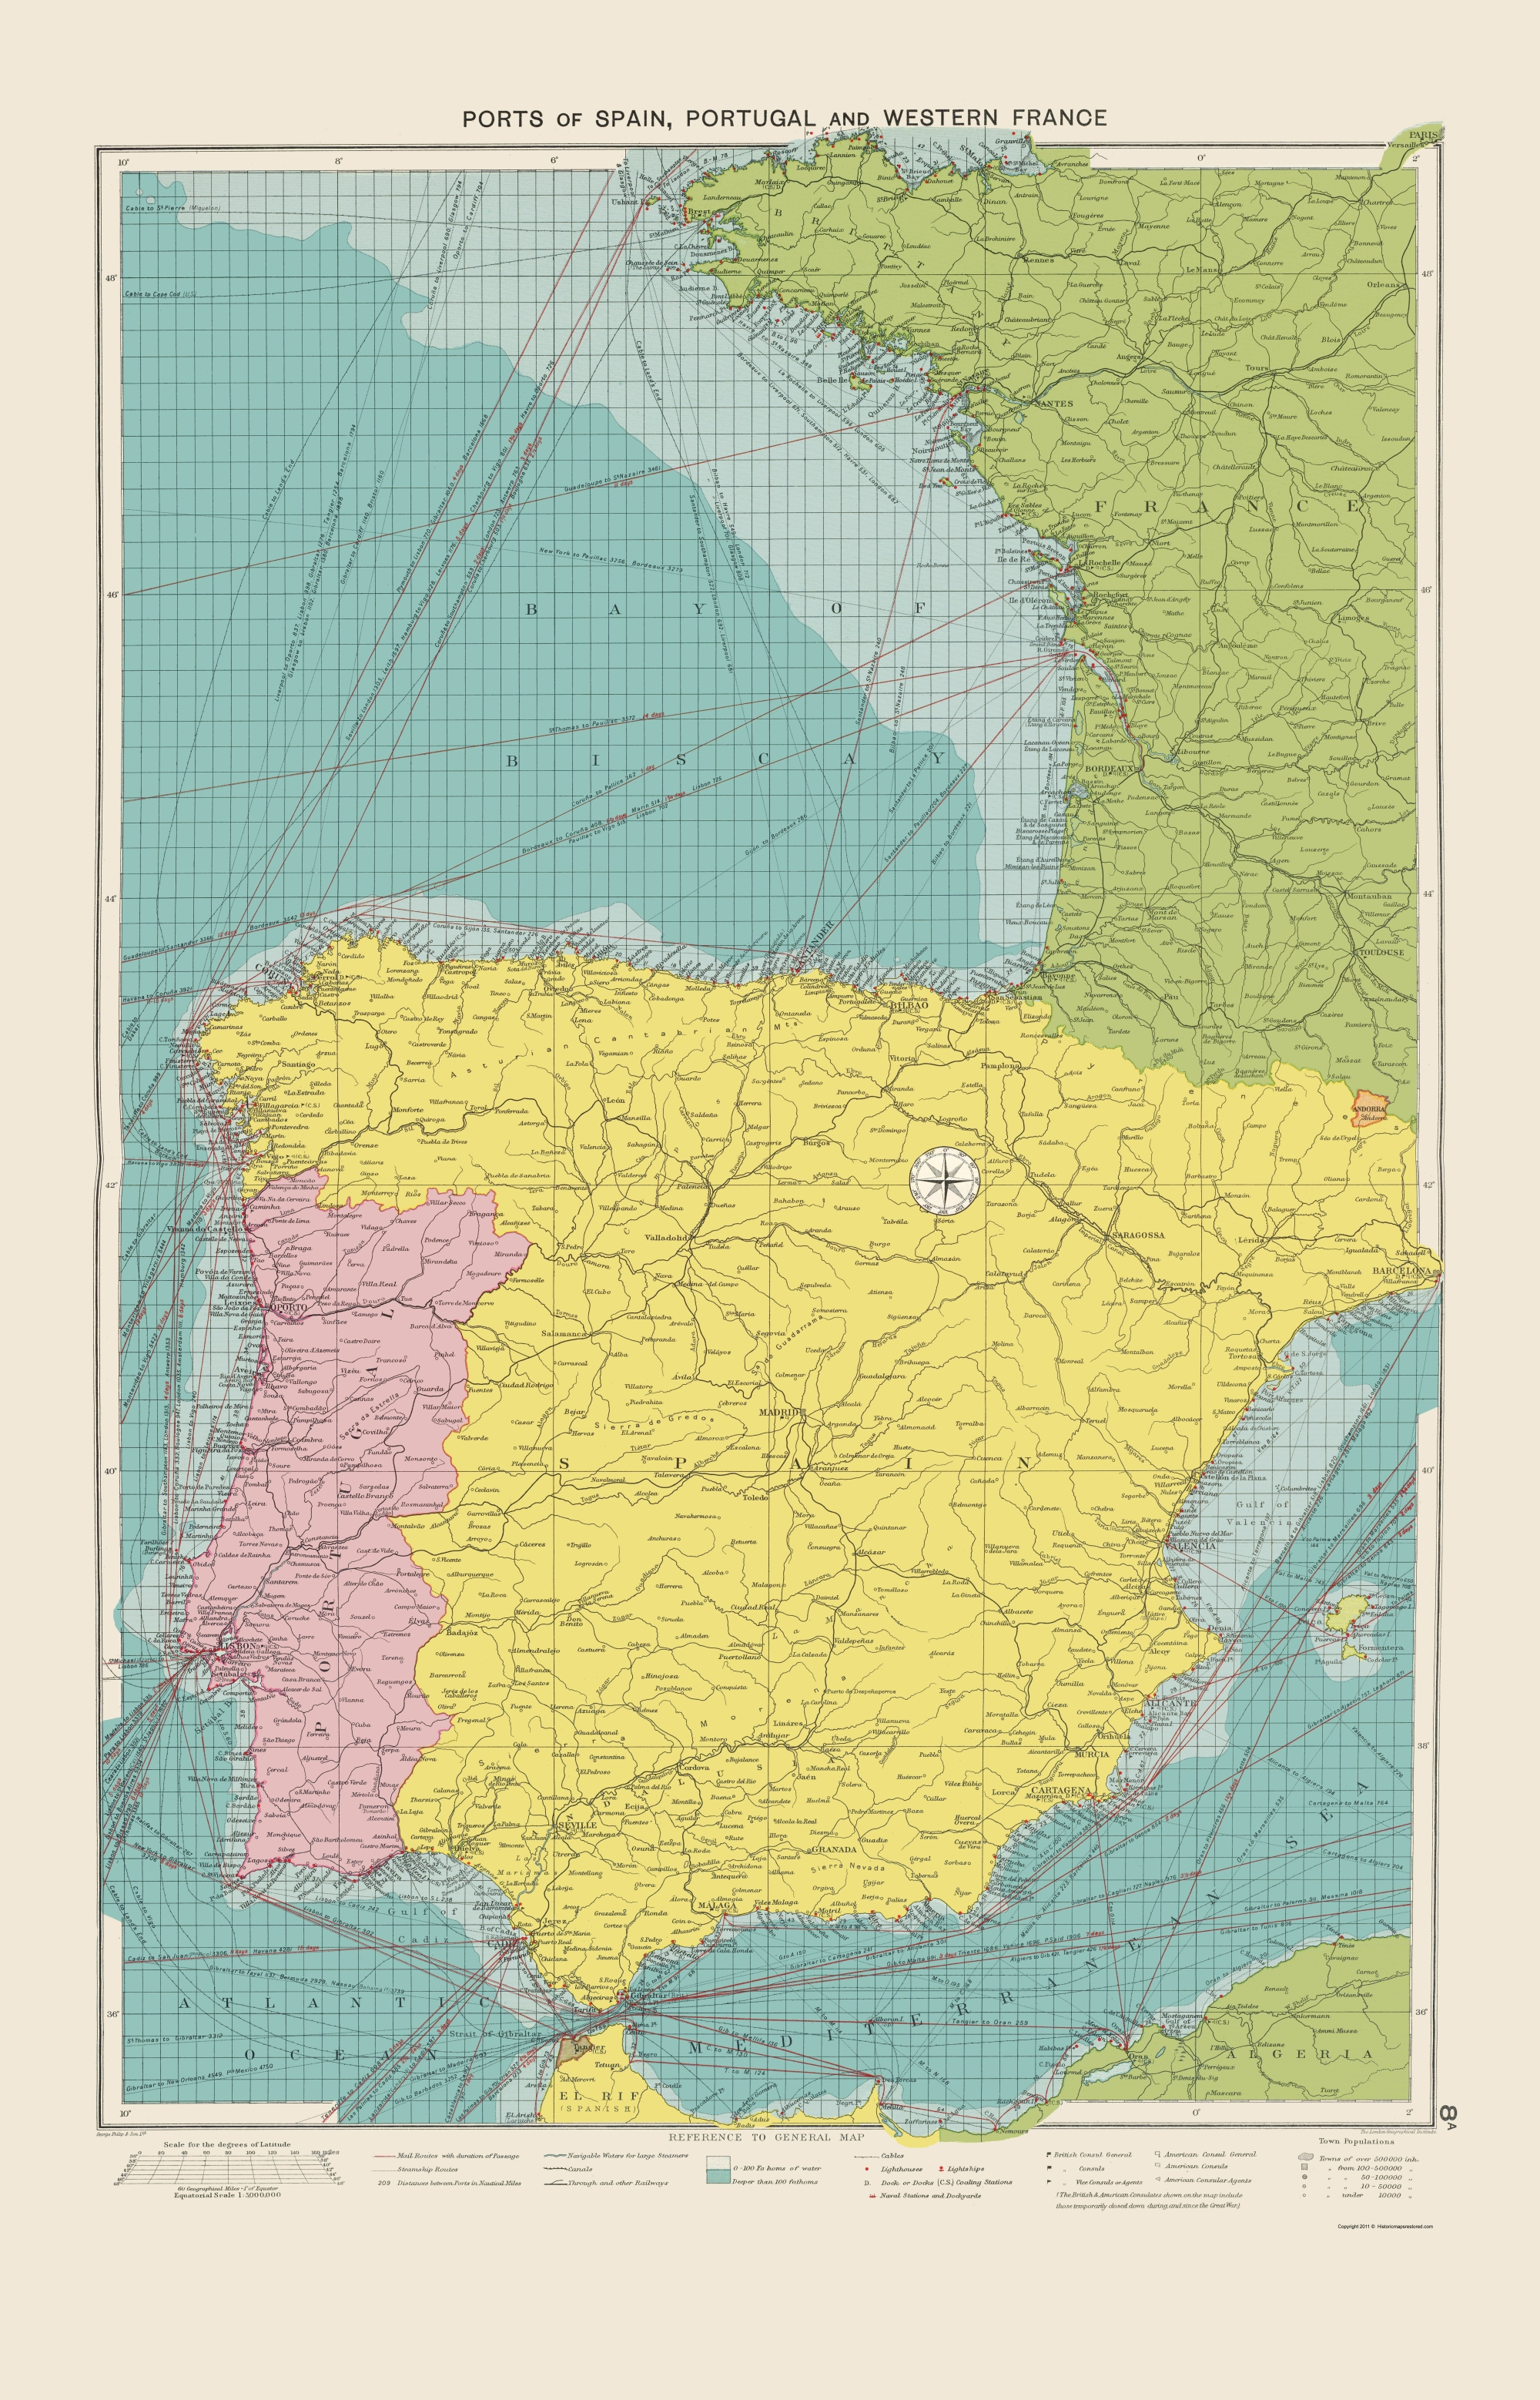 Map Of Spain Portugal And France.Old Europe Map Spain Portugal And Western France Ports